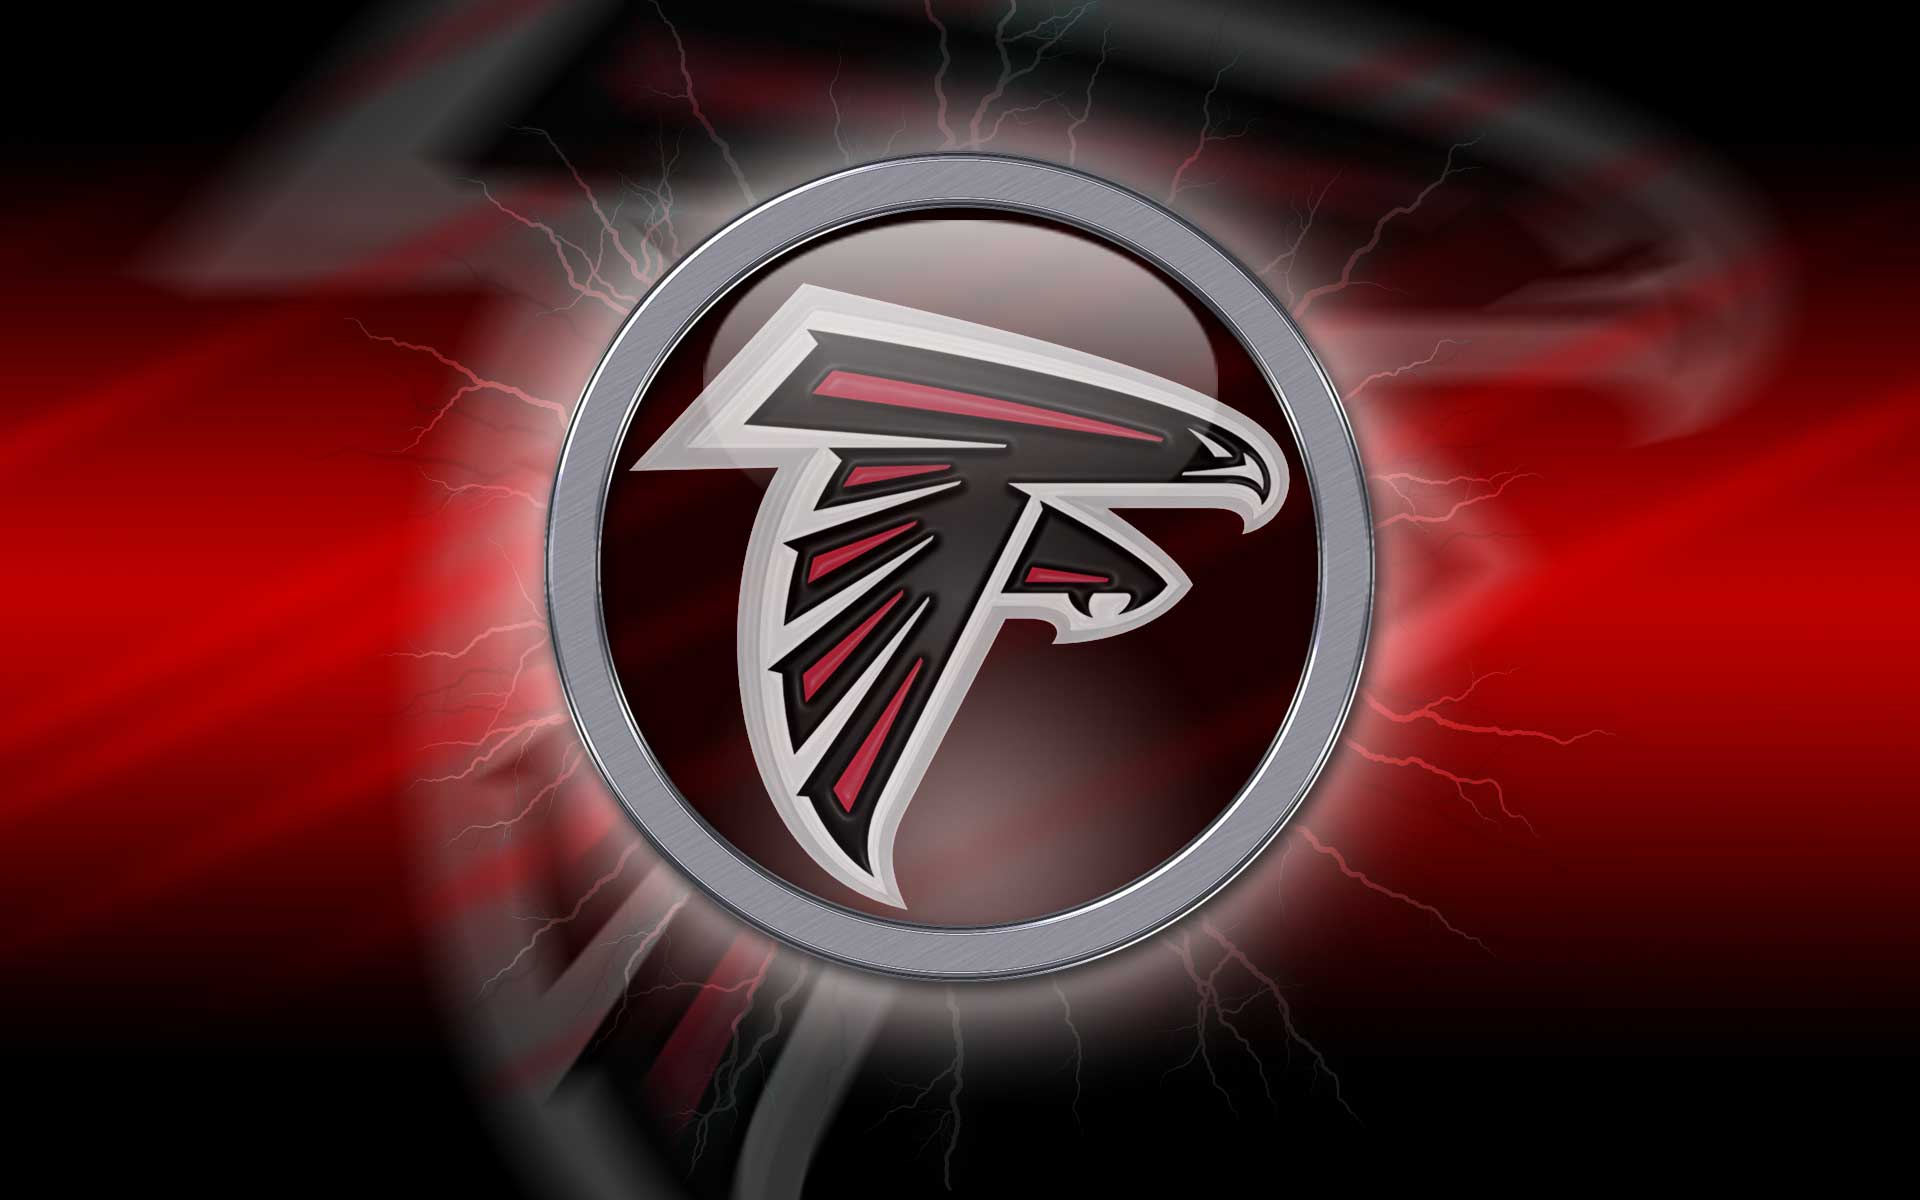 Seahawks Hd Wallpaper Atlanta Falcons Wallpapers Free Download Pixelstalk Net